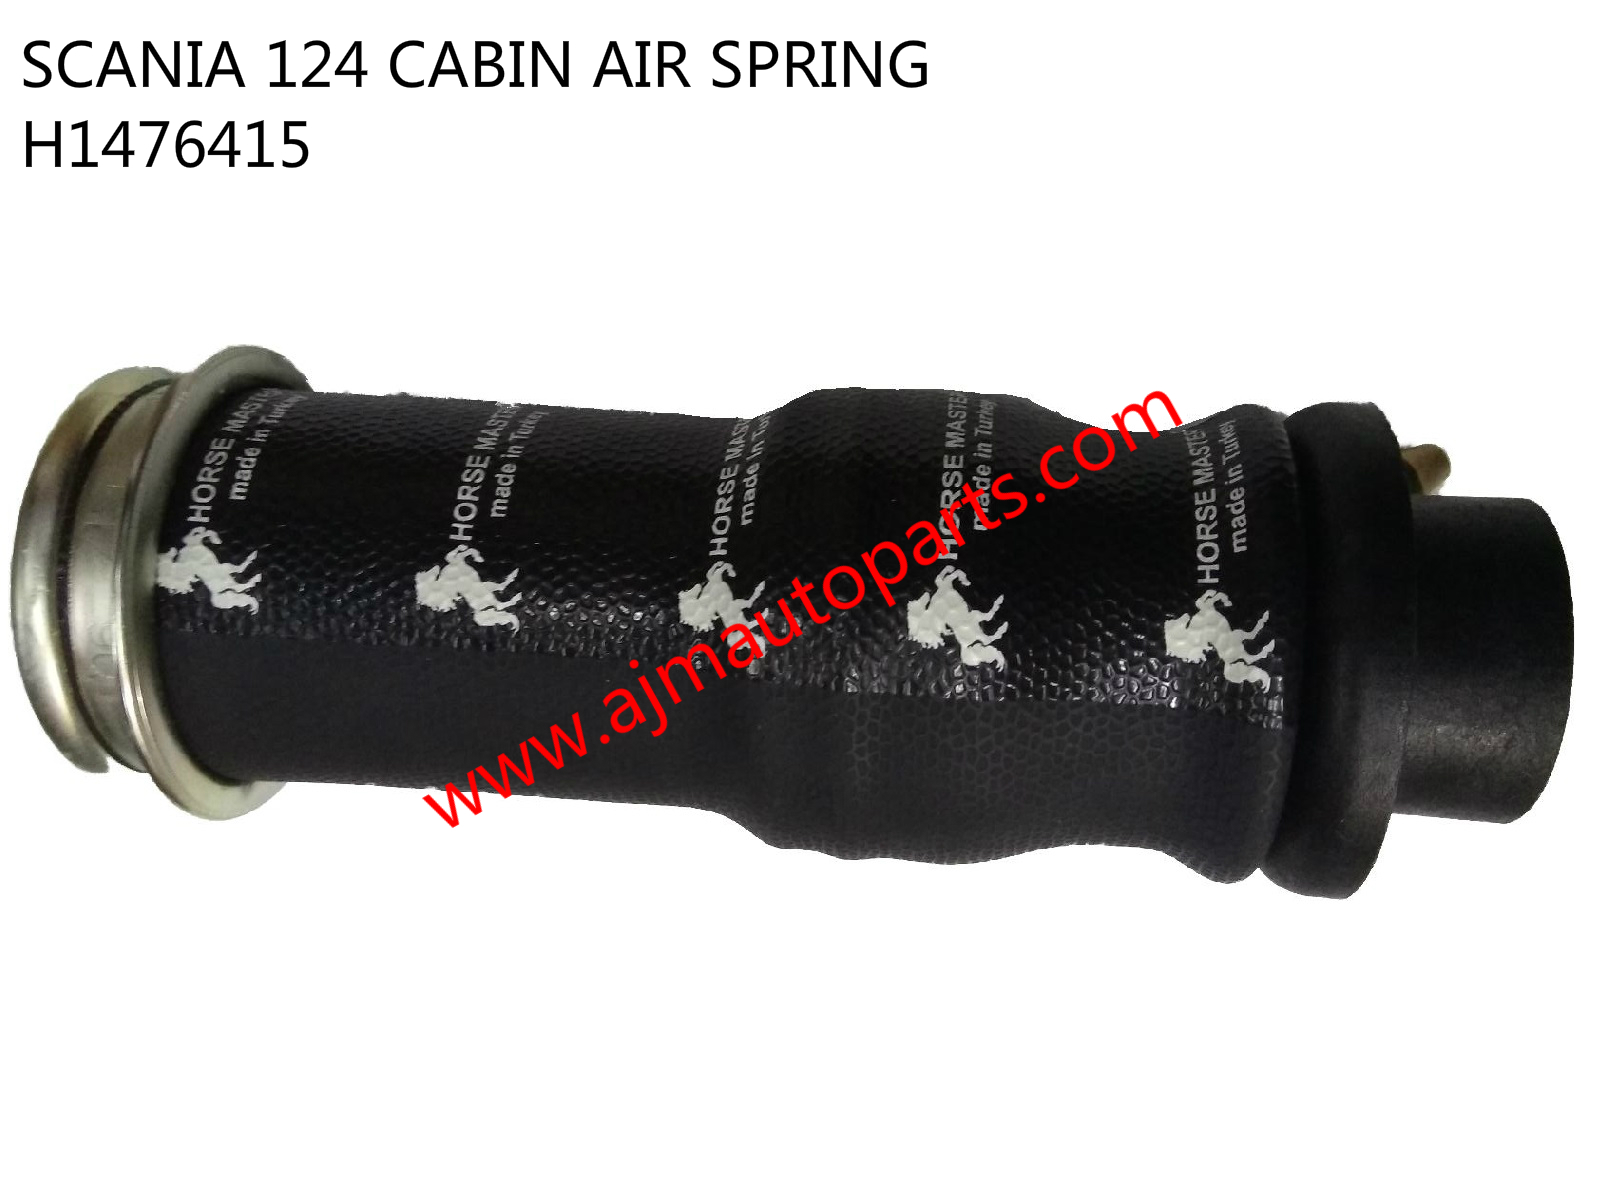 SCANIA 124 CABIN AIR SPRING-H1476415